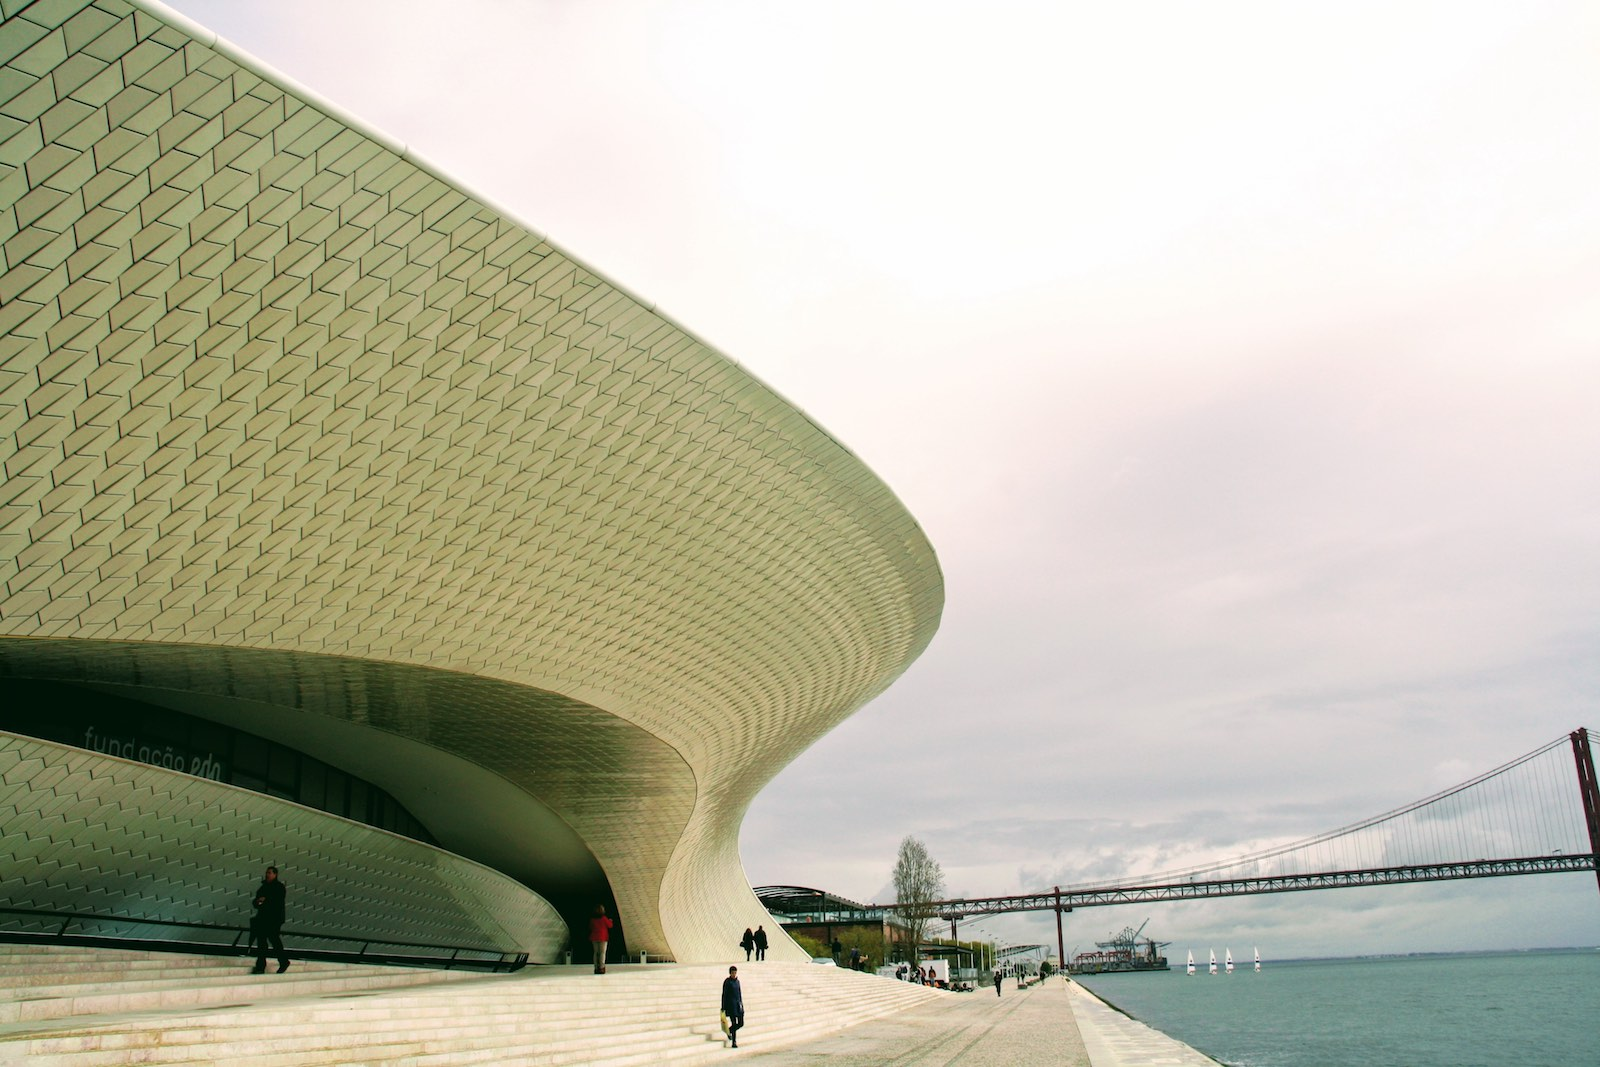 Portugal's Best Architecture Projects architecture Portugal's Best Architecture Projects MAAT Museum